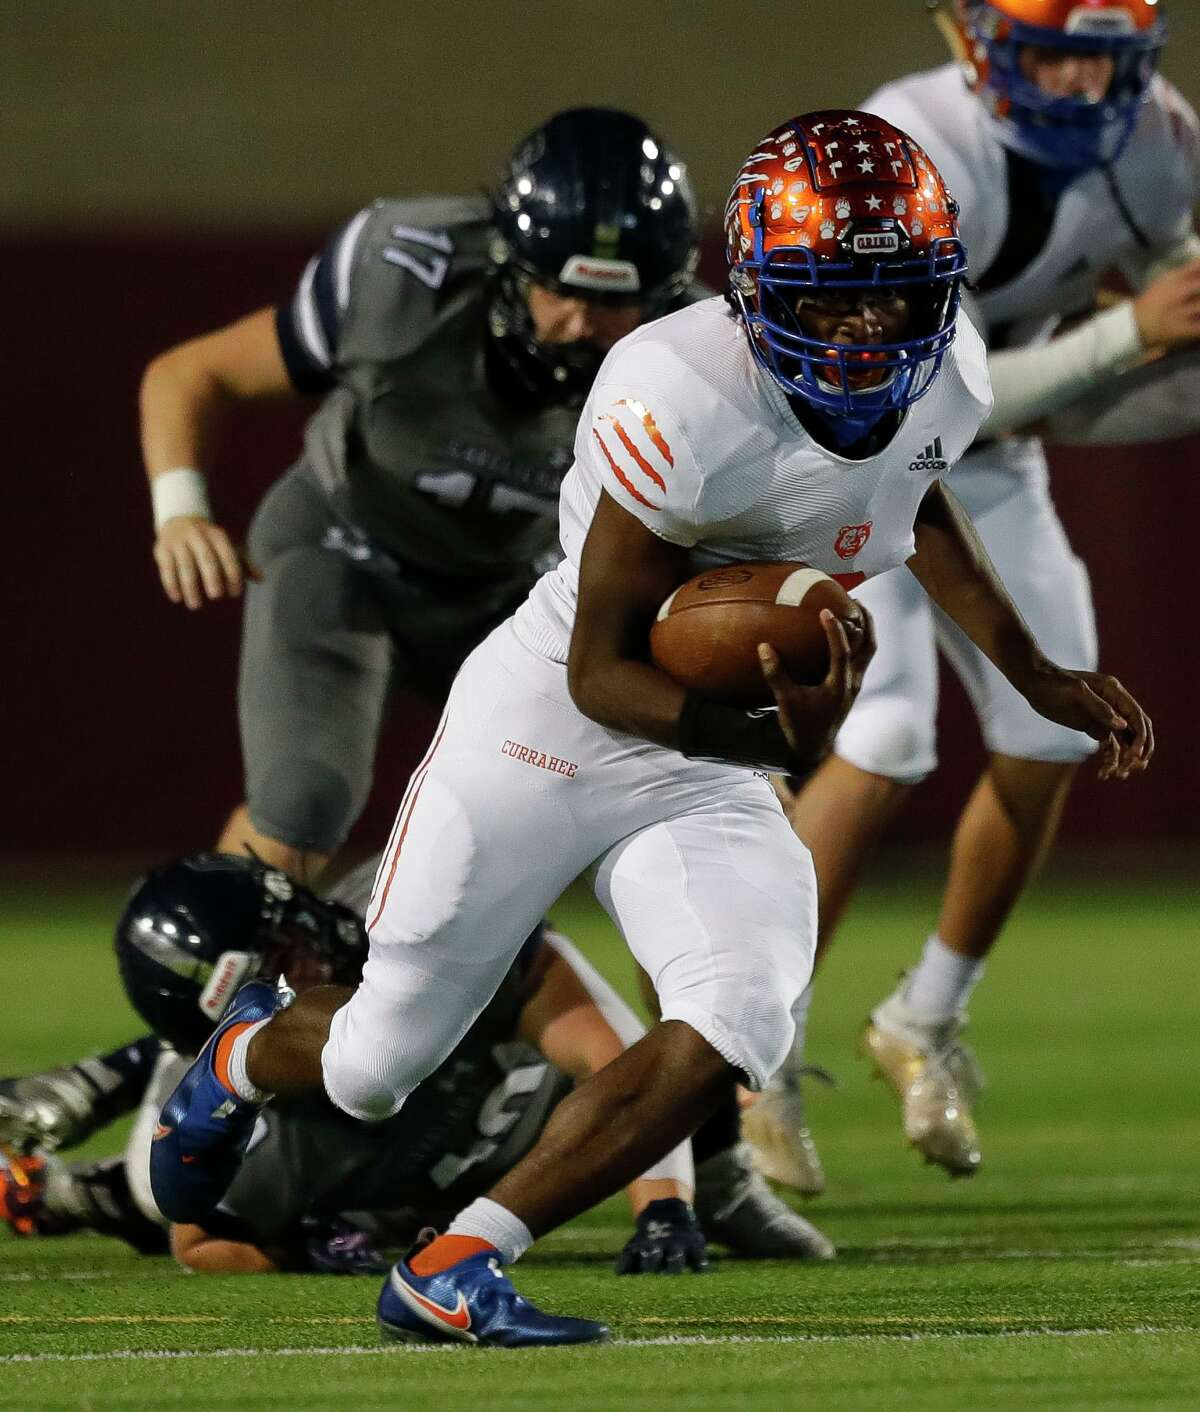 Grand Oaks running back Micah Cooper (8) runs the ball during the second quarter of a District 13-6A high school football game at Woodforest Bank Stadium, Friday, Oct. 30, 2020, in Shenandoah.